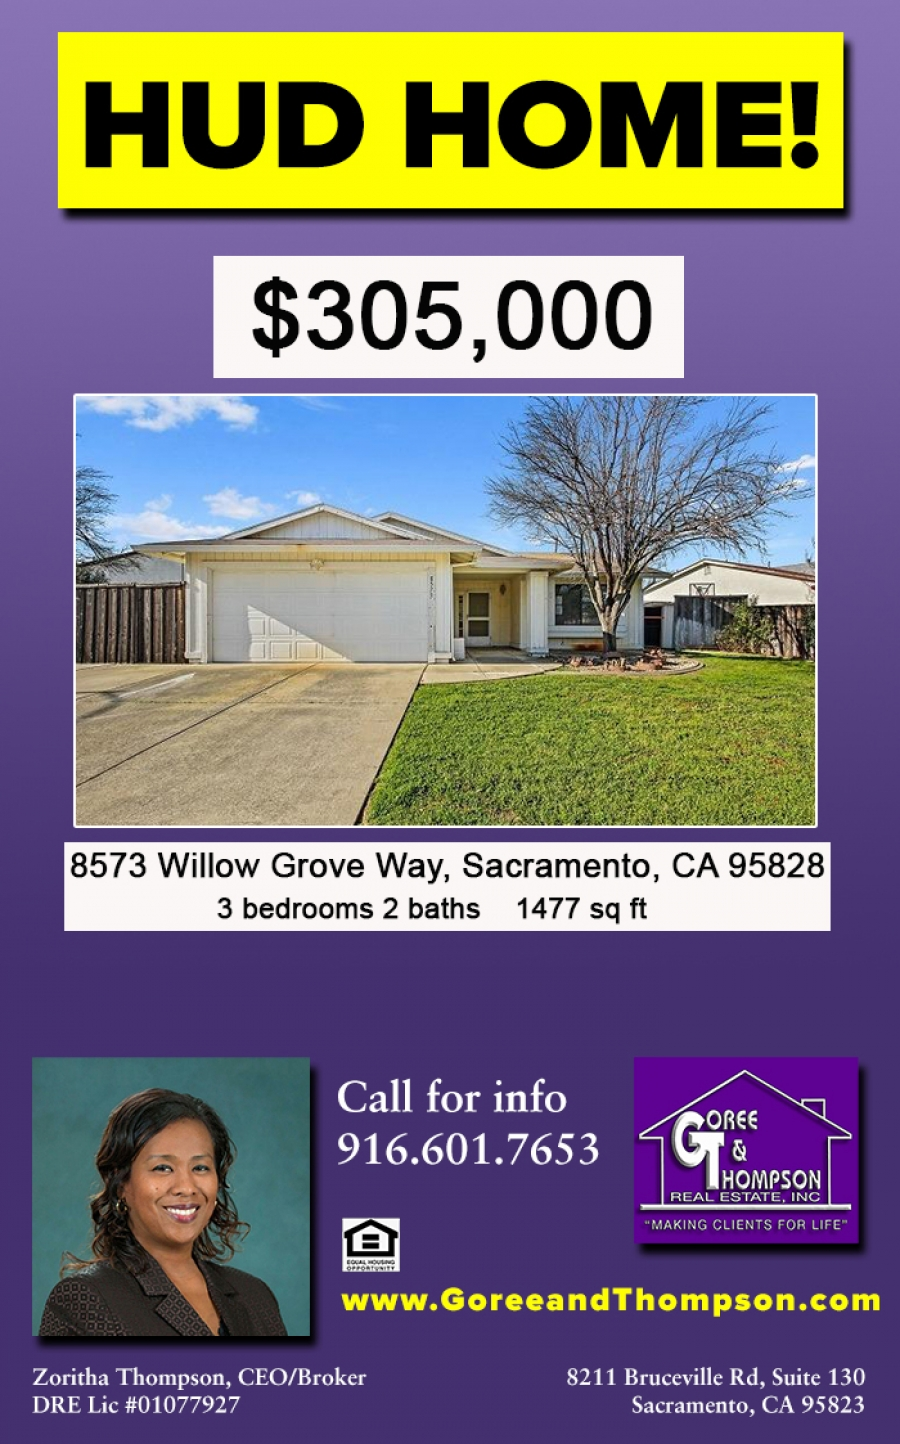 HUD HOME available - 3 bedrooms, 2 baths